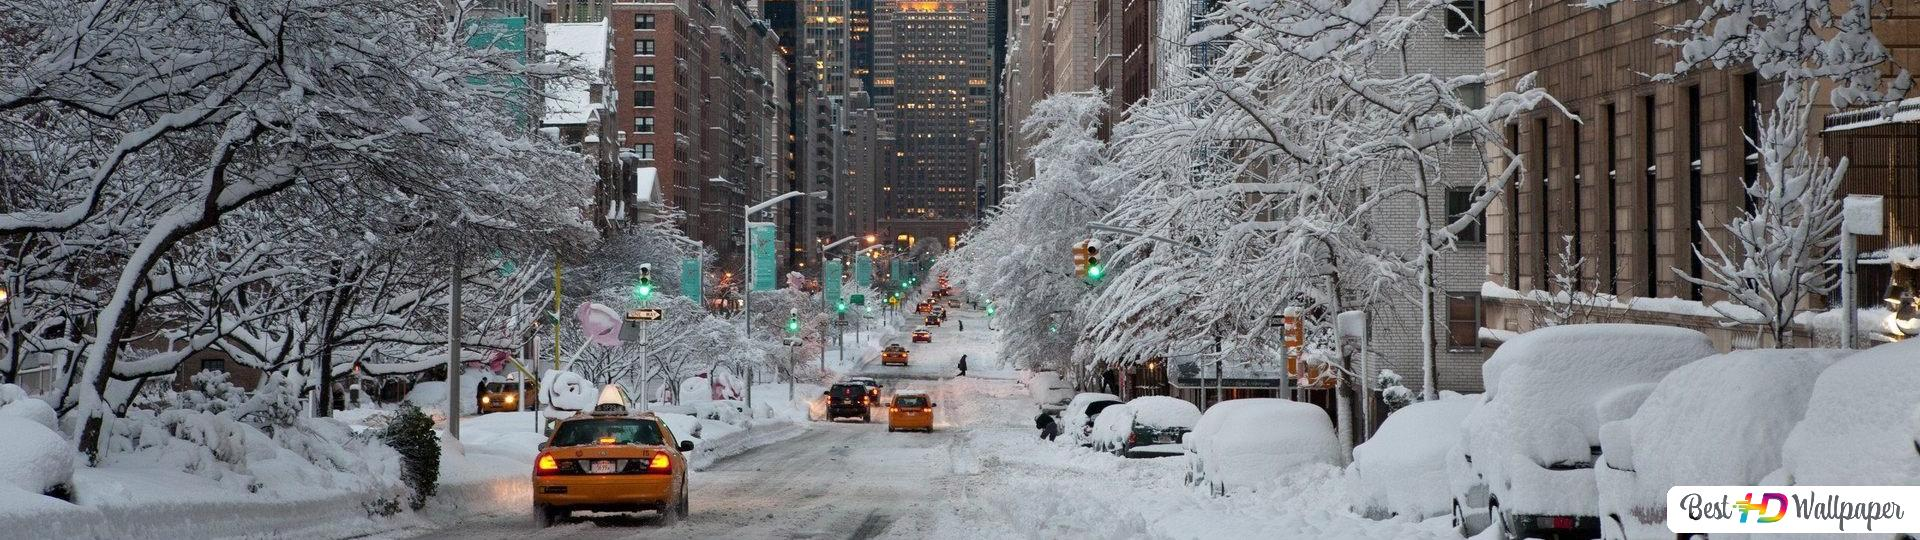 Winter In The City Hd Wallpaper Download